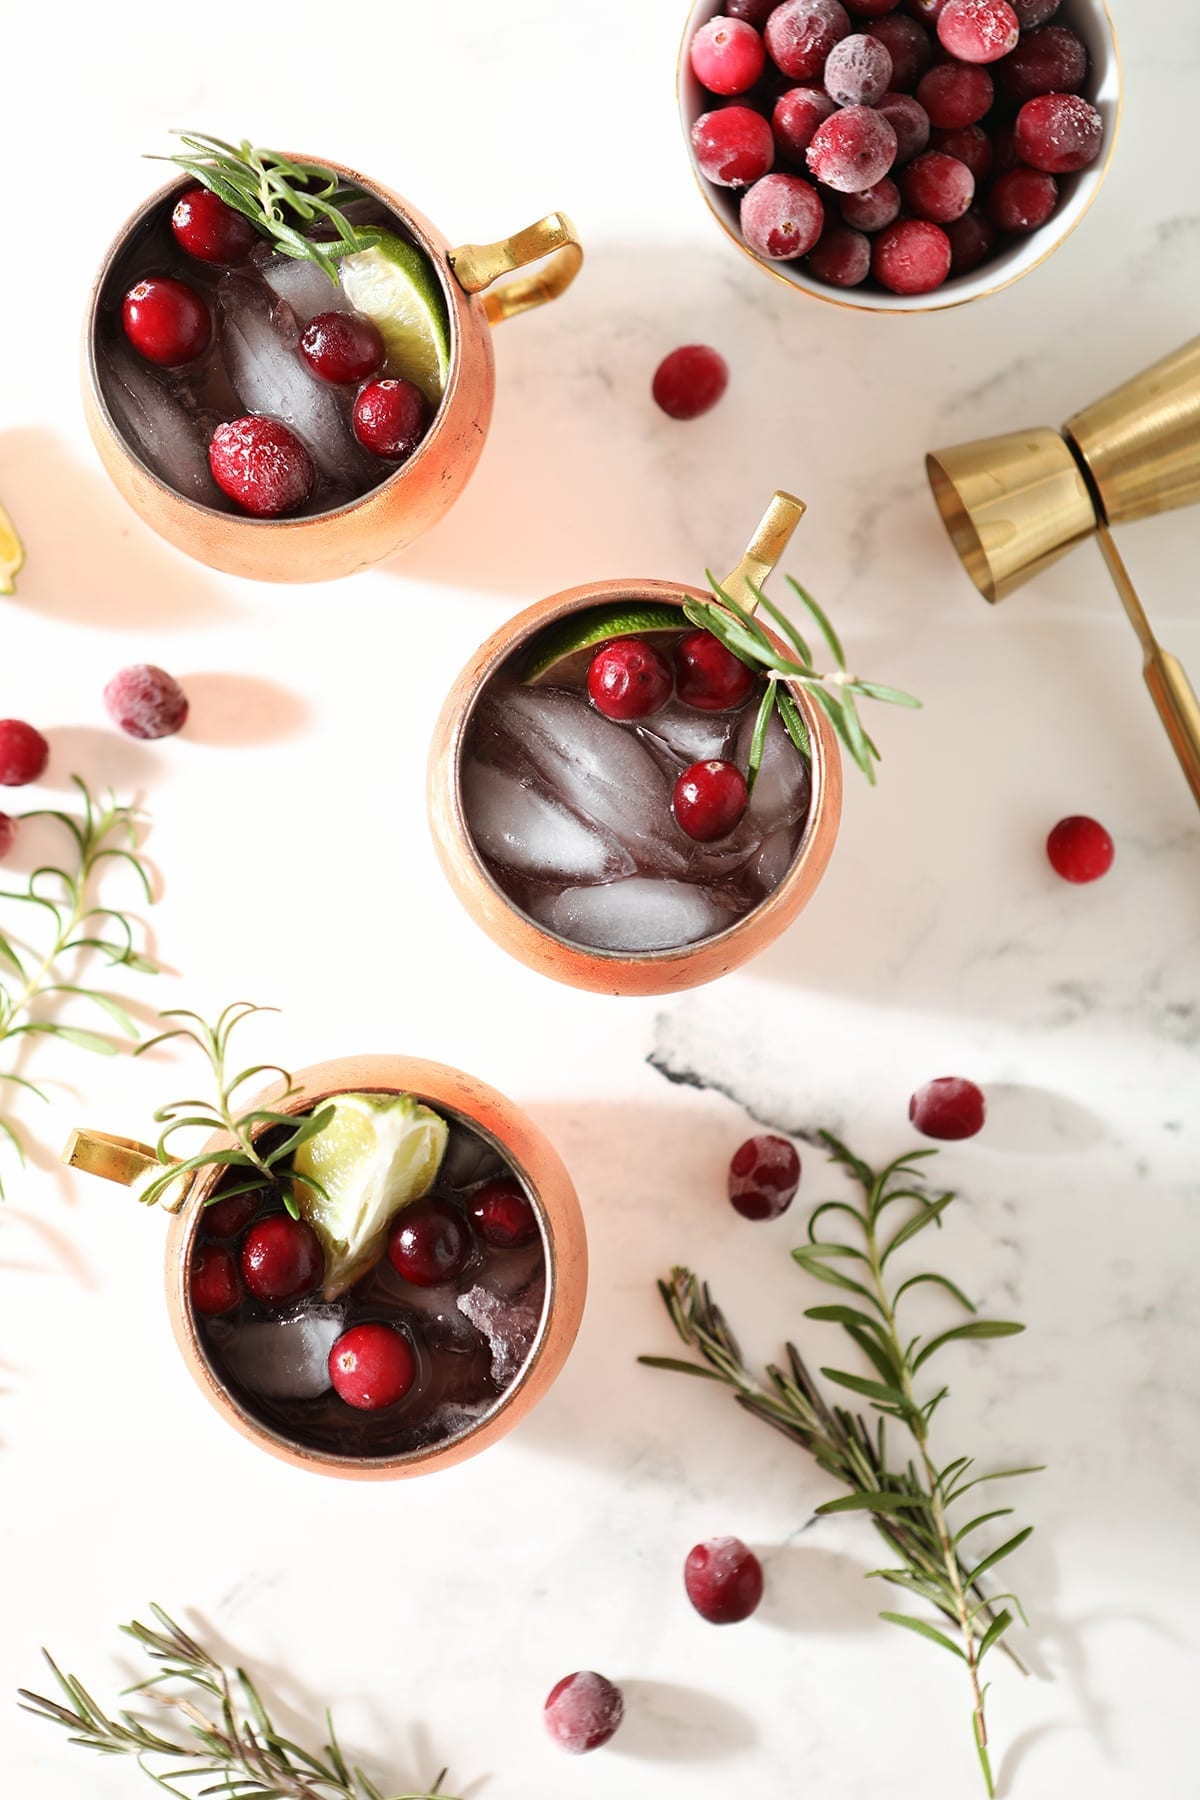 Three Cranberry Mules sit on a marble surface next to a bowl of cranberries, a gold jigger, rosemary sprigs and more cranberries